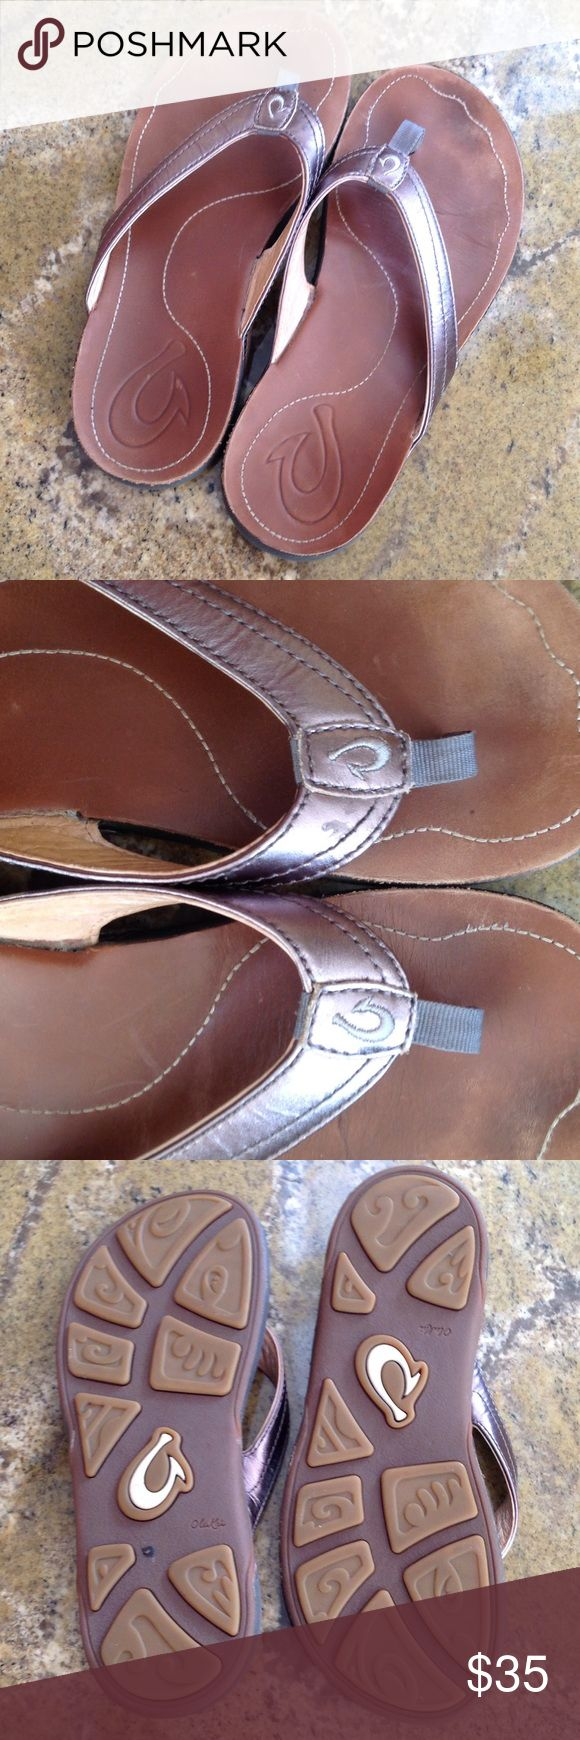 Size 6 Olukai sandal Size 6 Olukai sandal very little wear Olukai Shoes Sandals